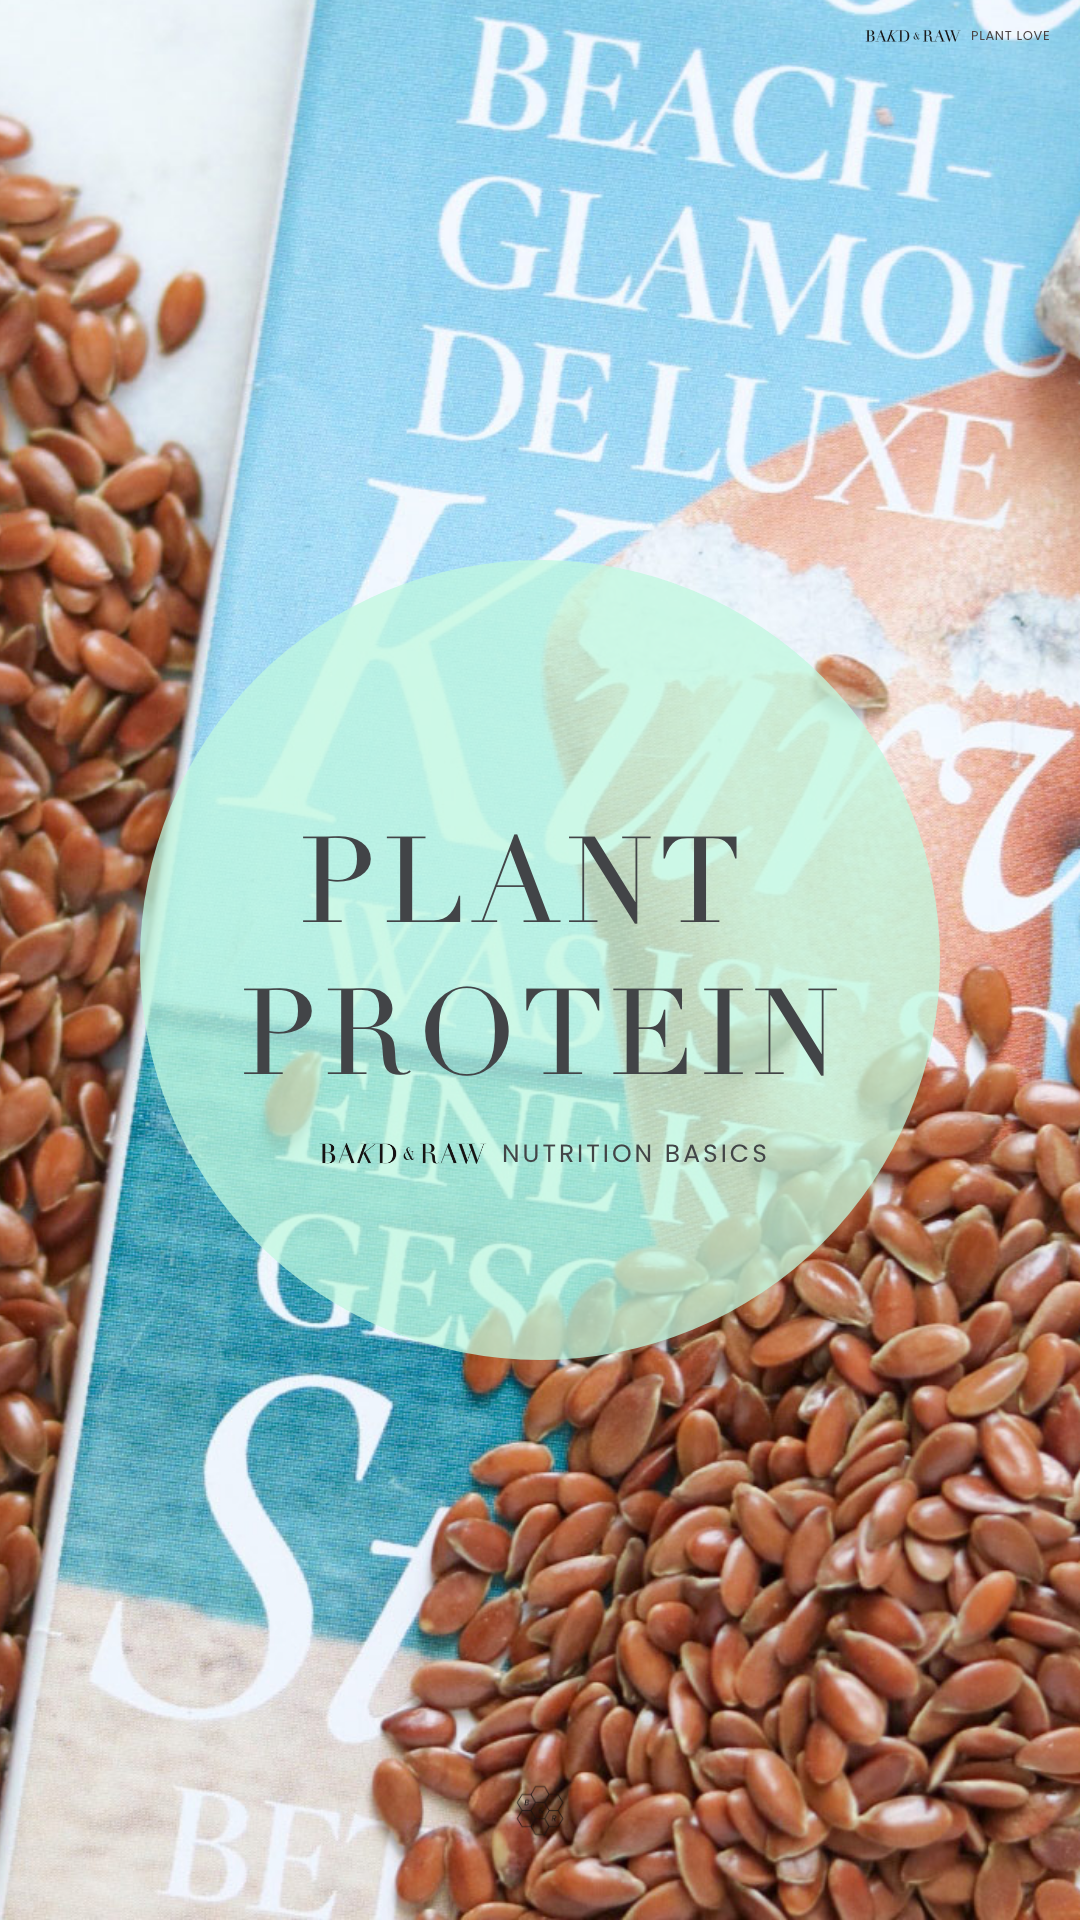 Bakd&Raw Plant Protein Guide; Flax Seeds